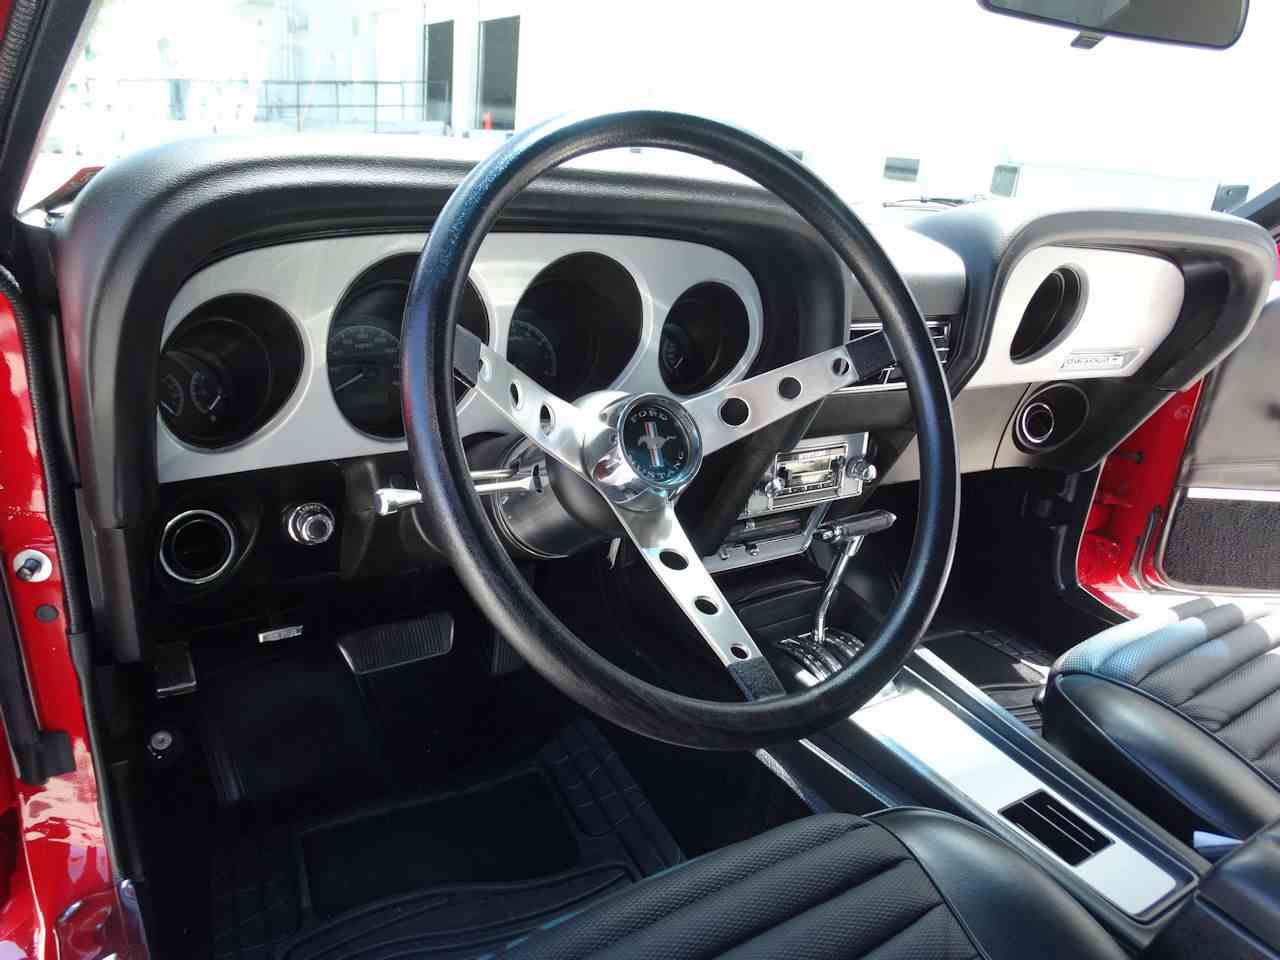 Large Picture of '70 Ford Mustang located in Coral Springs Florida - $60,000.00 - LG4A